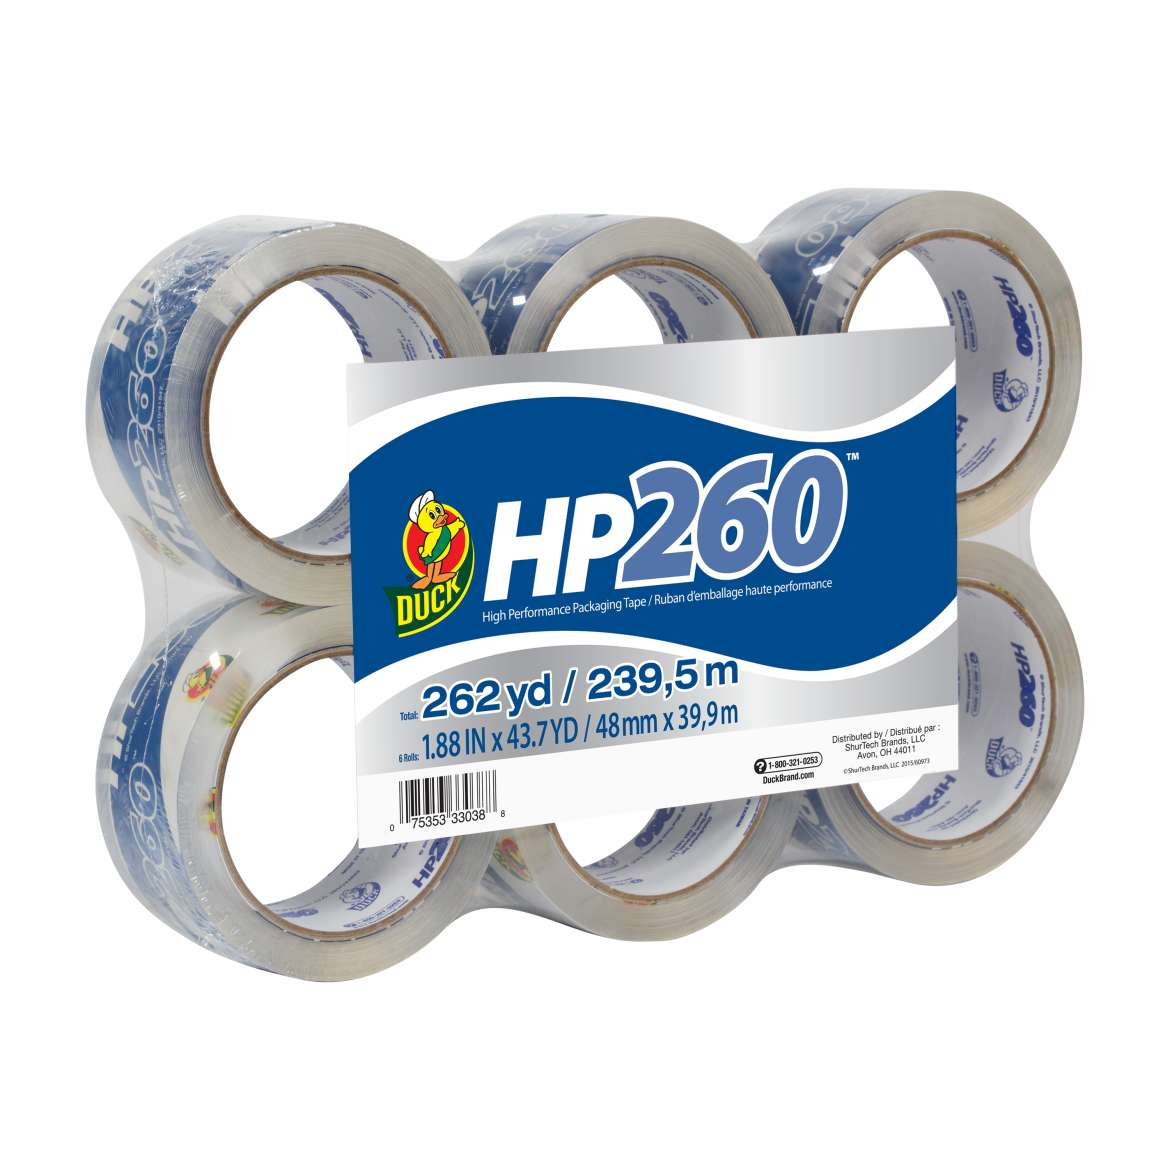 HP260™ High Performance Premium Packing Tape Image